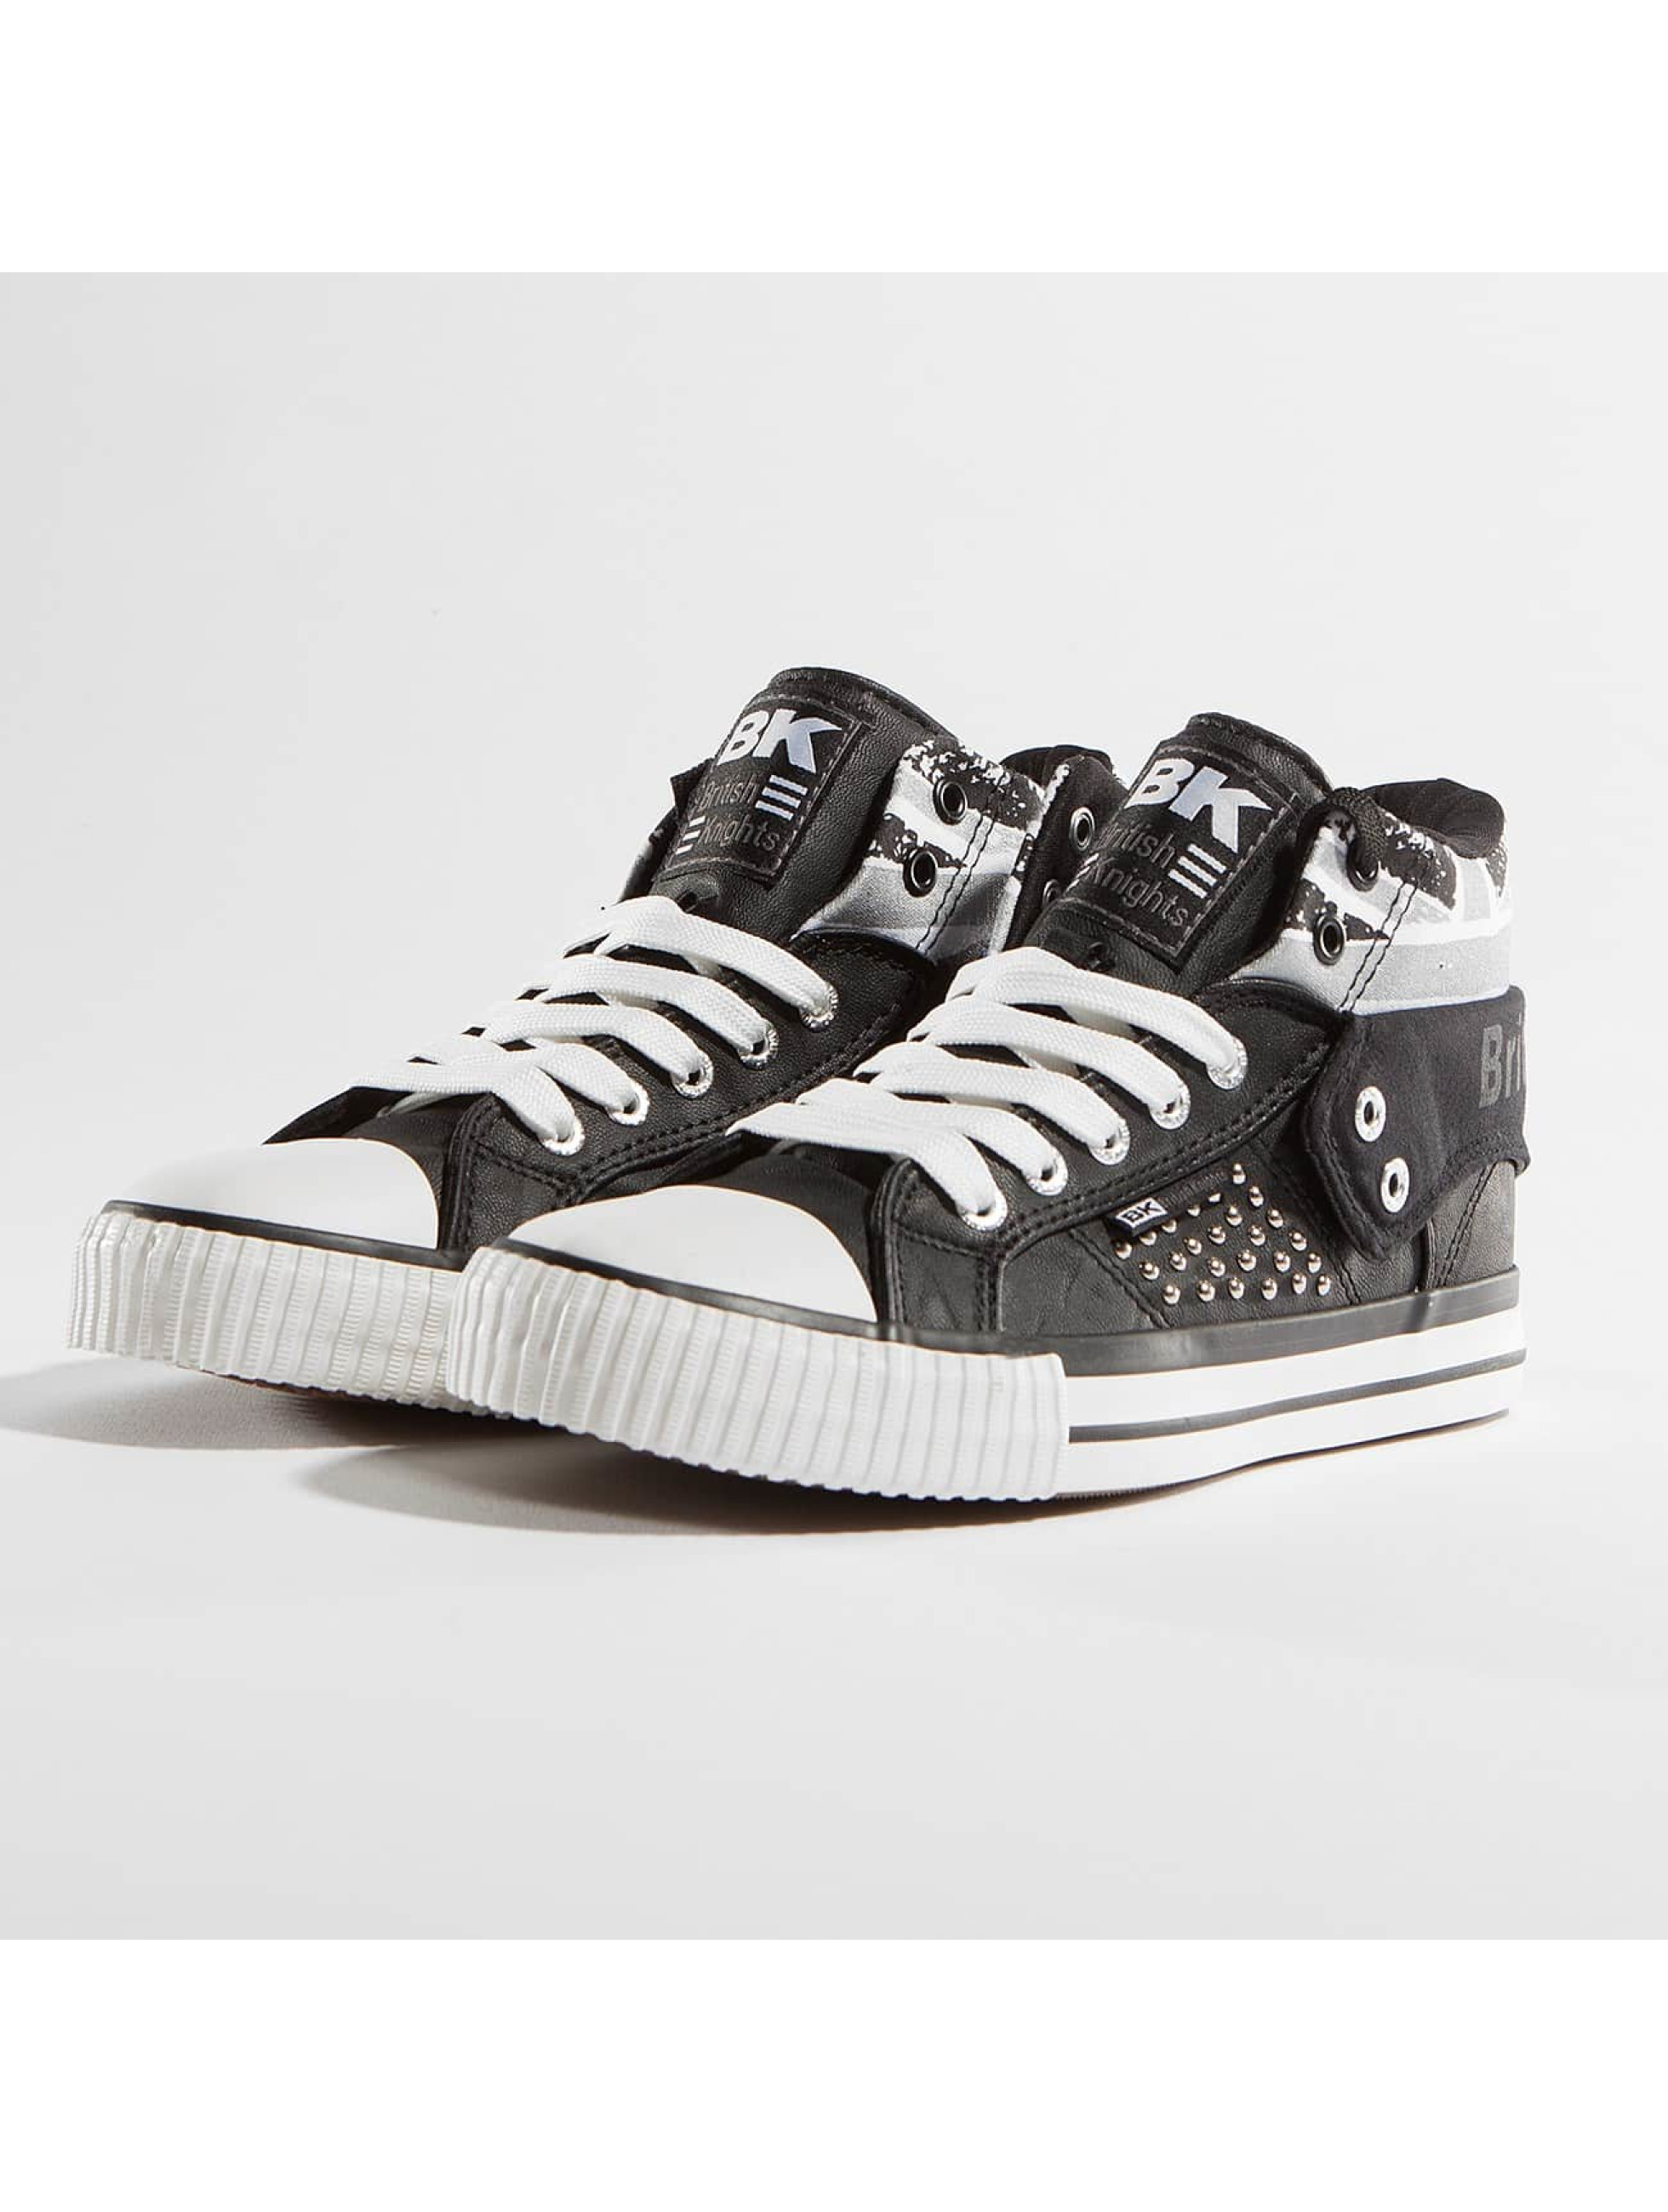 british knights damen schuhe sneaker roco pu rivets ebay. Black Bedroom Furniture Sets. Home Design Ideas